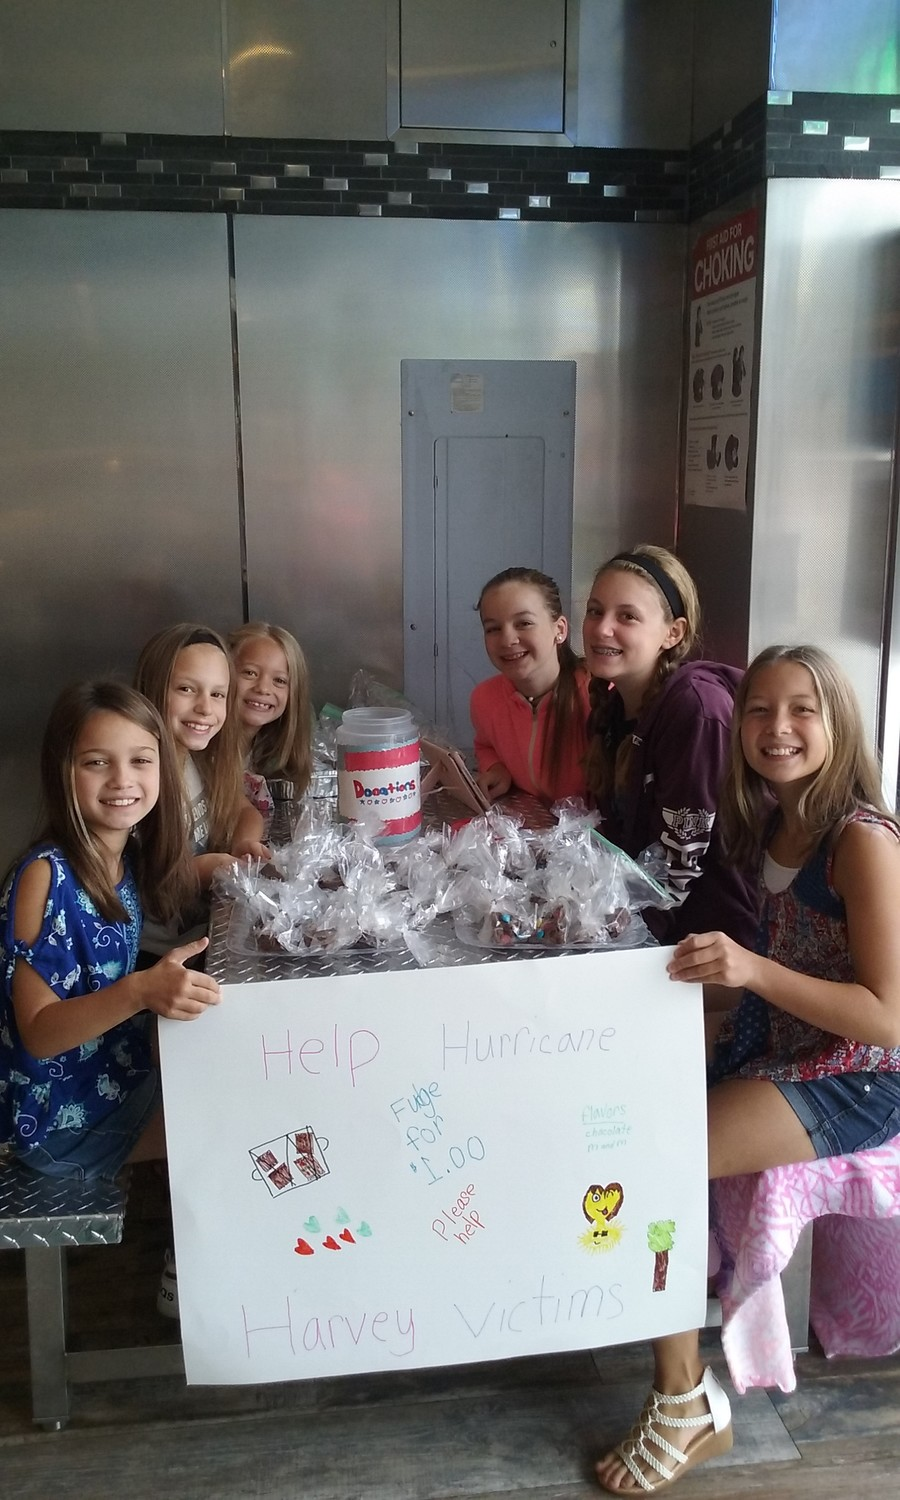 Karissa McGlynn, left, Keira McGlynn, Lani Hoffman, Lia Hoffman, Caroline Scali, Kaitlyn Scali and Kassidy McGlynn worked together to sell homemade fudge to help victims of Hurricane Harvey in Texas.